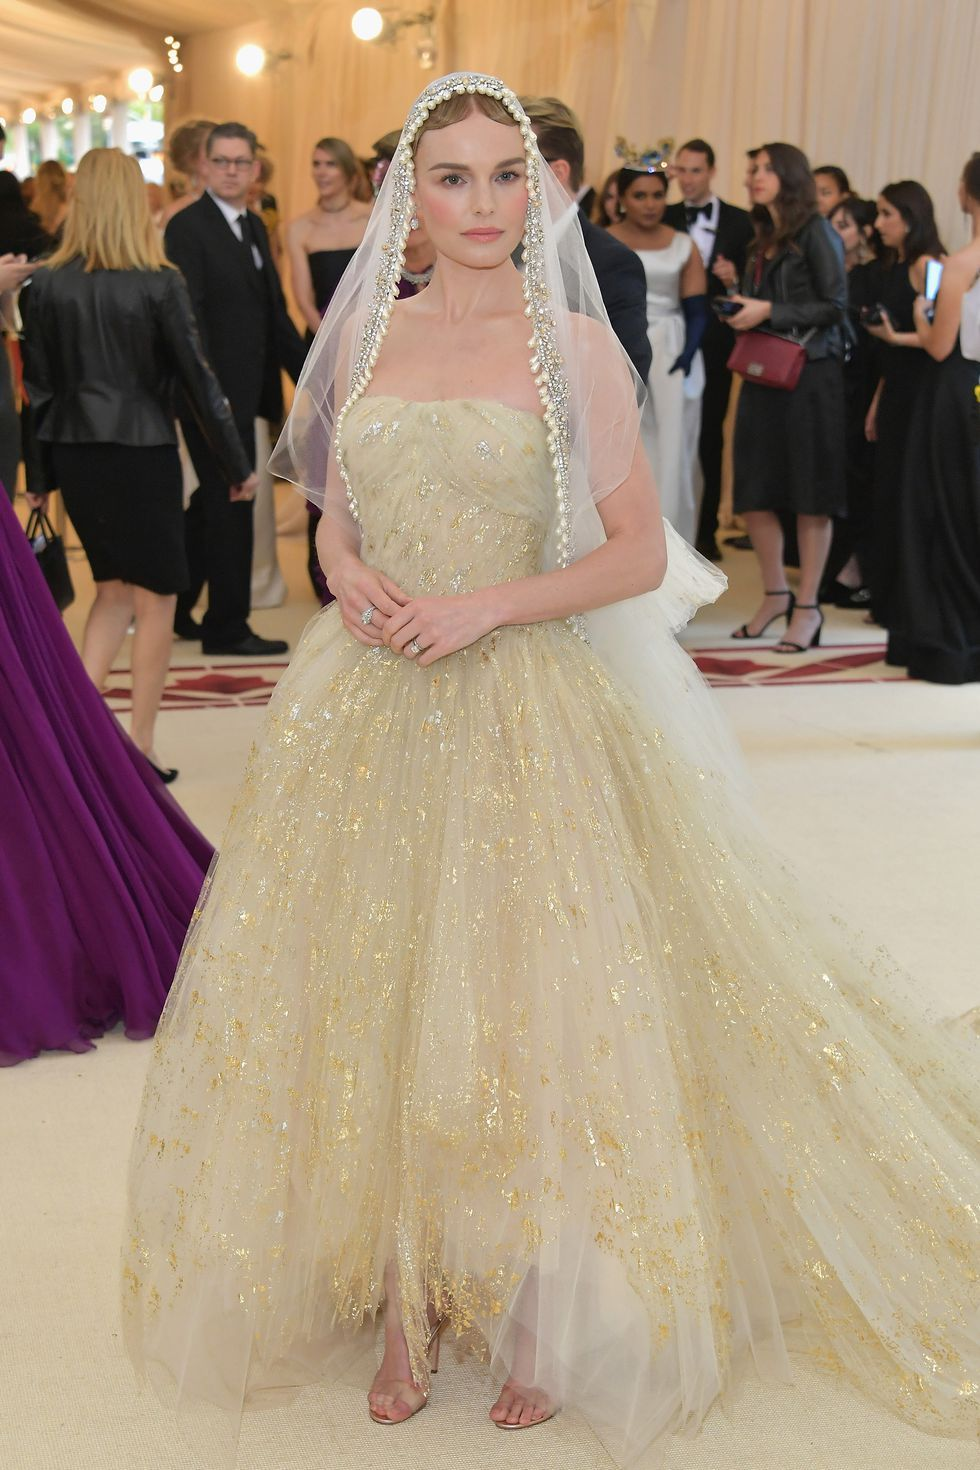 cf8e0da5bb16 All Met Gala 2018 Dresses - Met Gala Red Carpet Celebrity Style